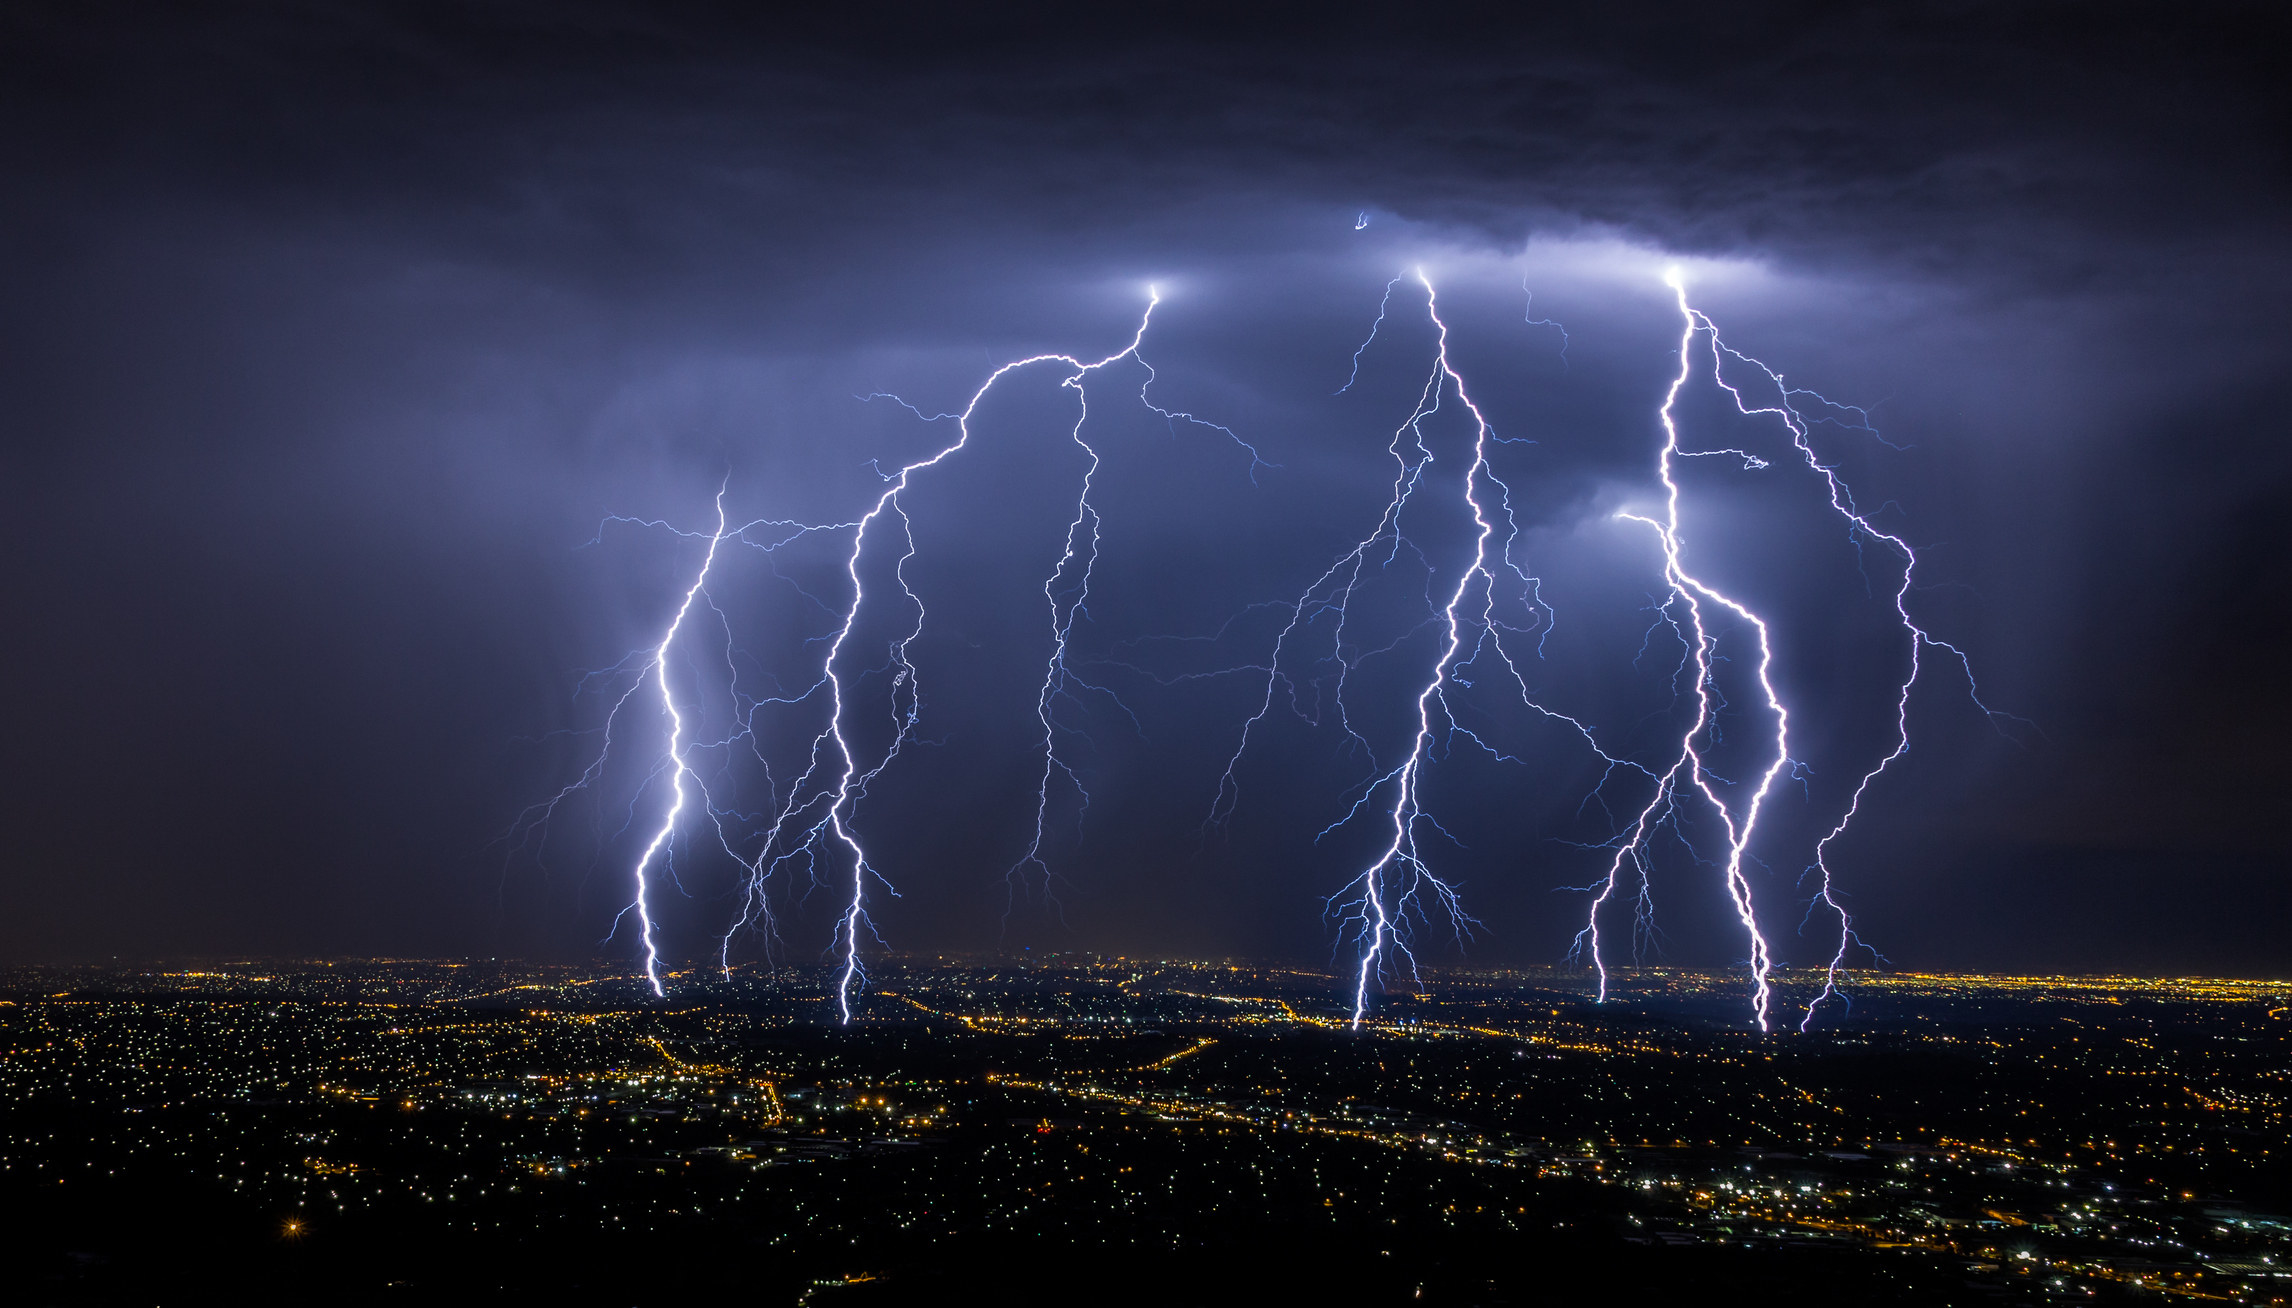 Lightning over a populated area